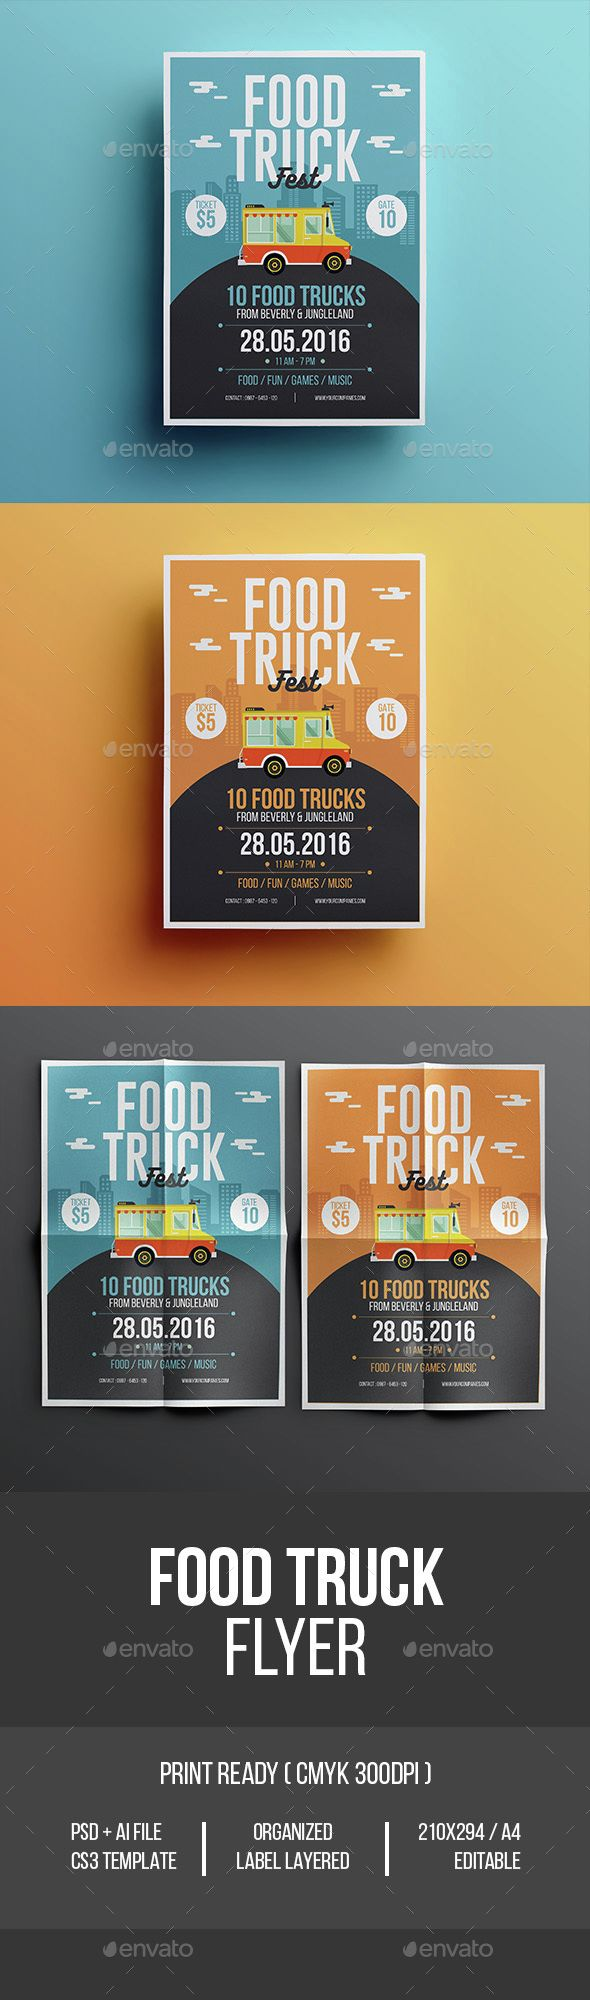 pin by best graphic design on flyer templates flyer design flyer